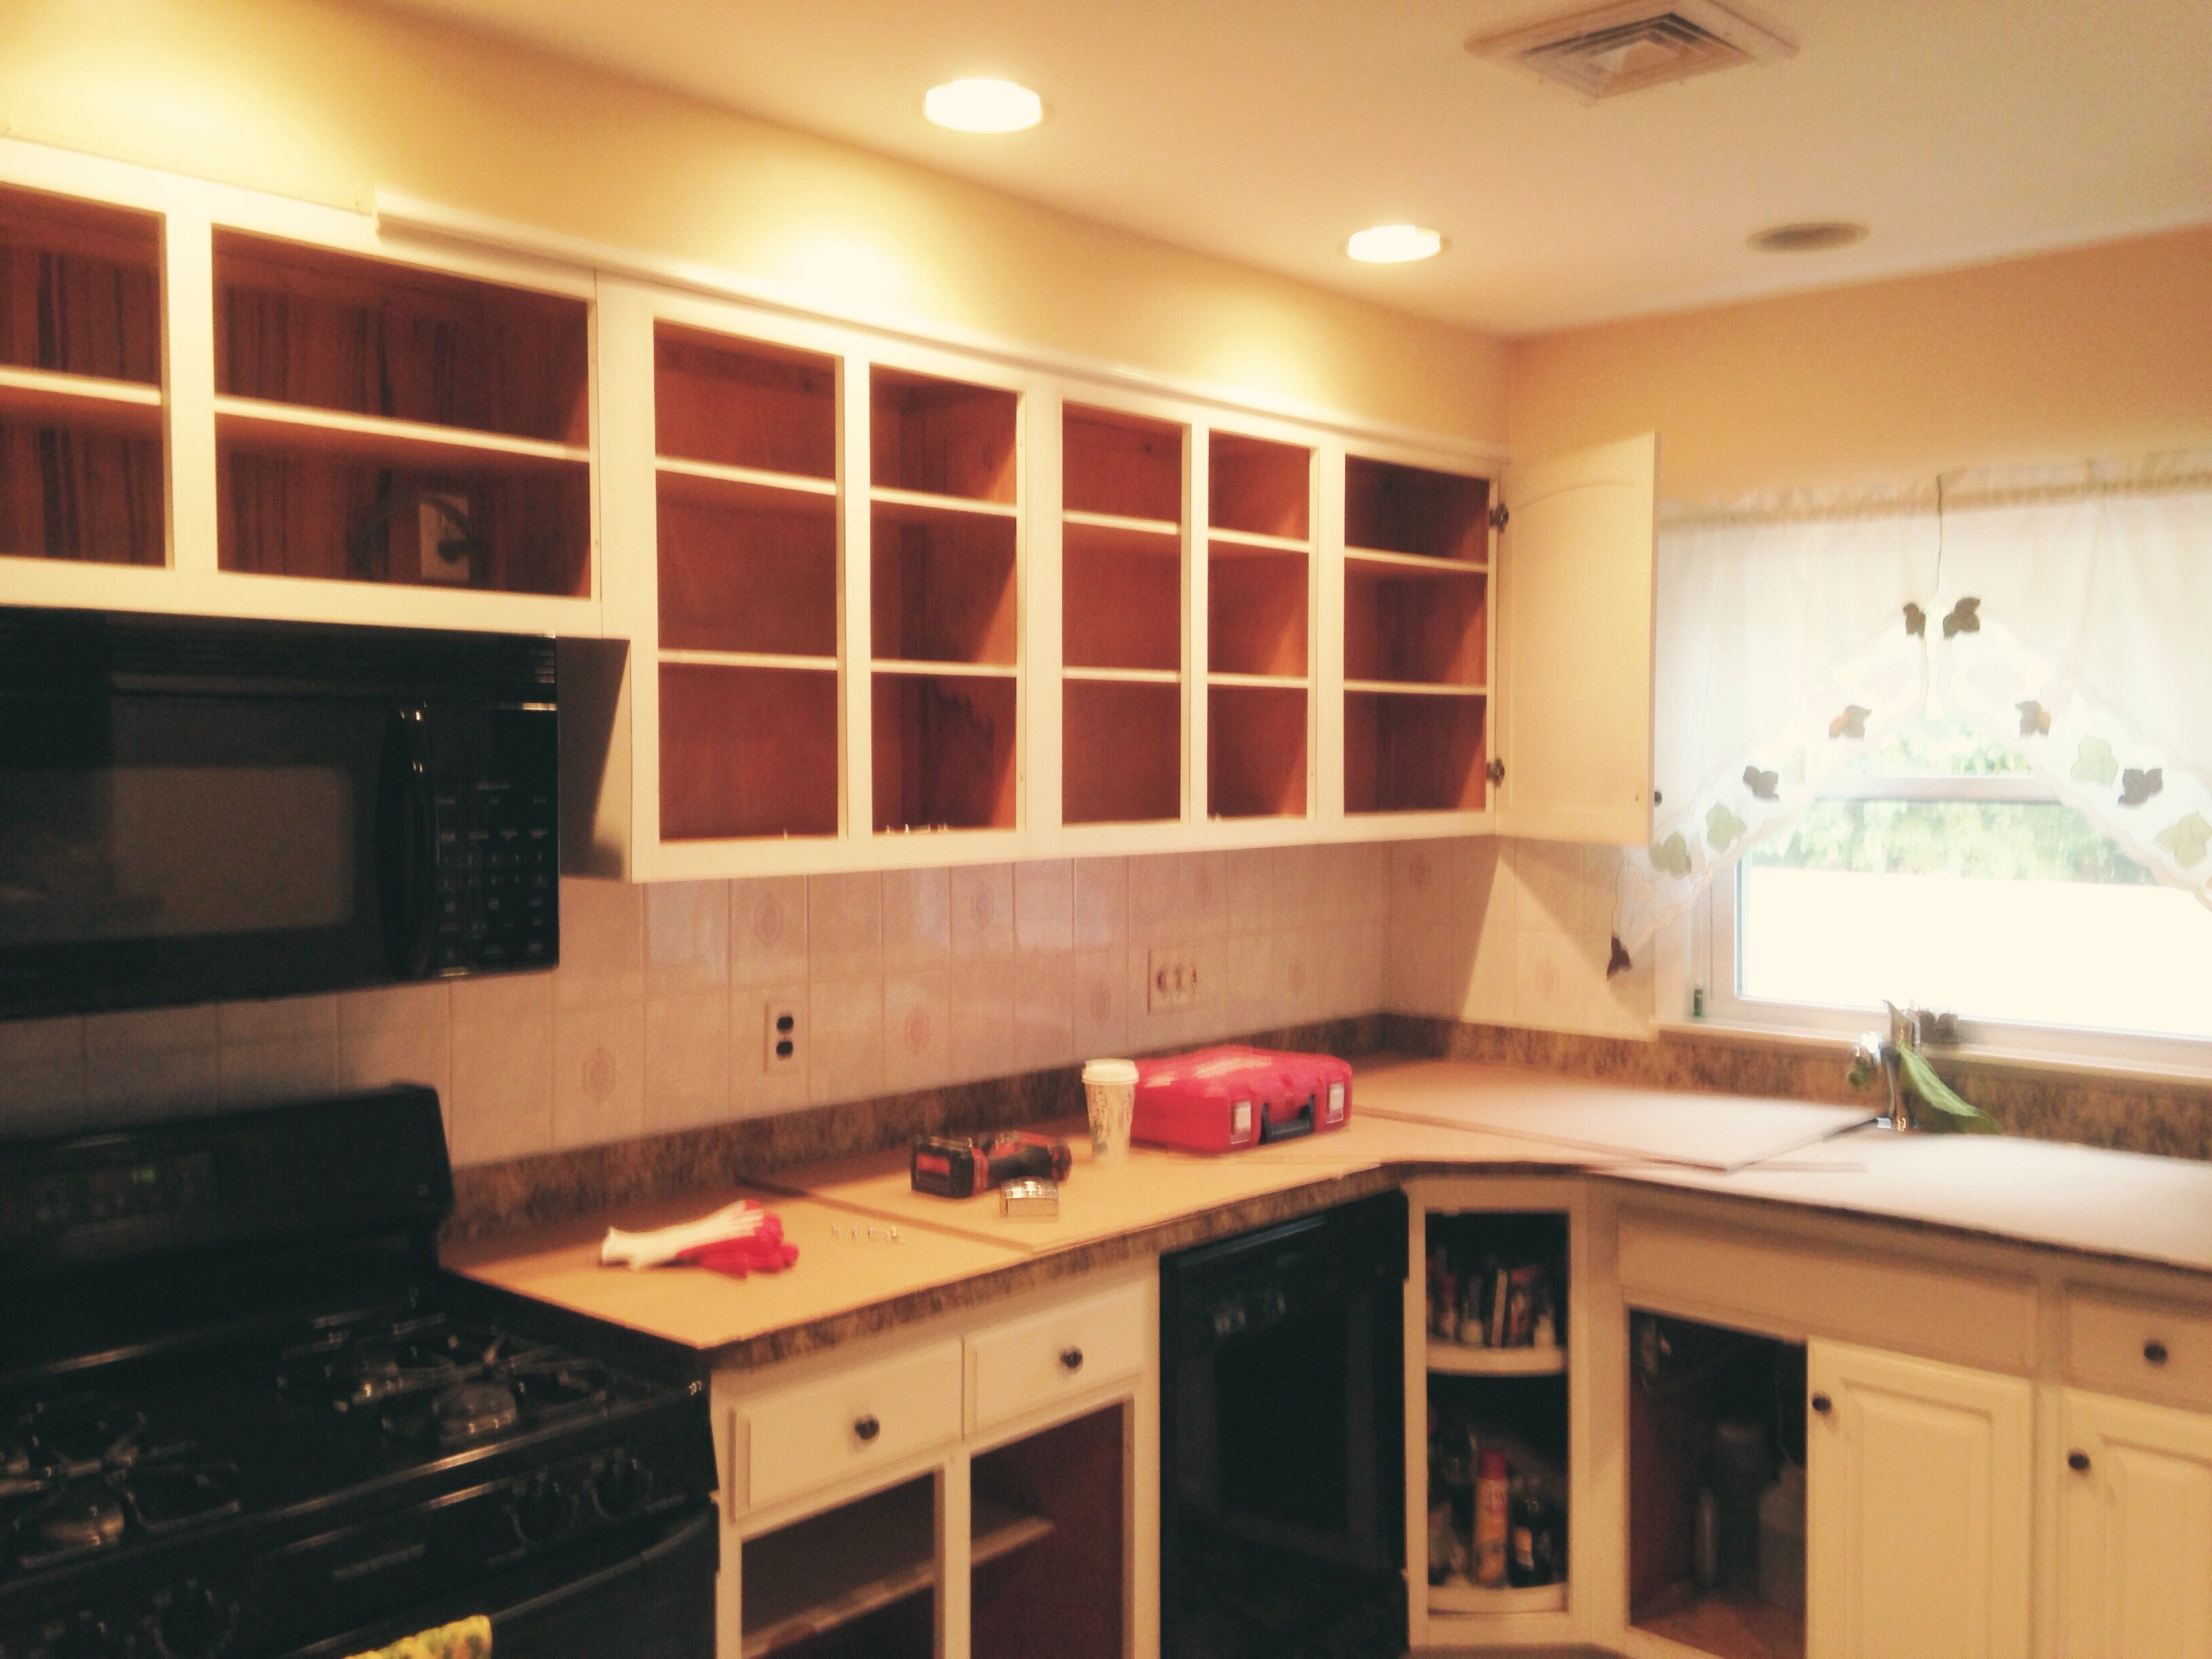 Refacing Laminate Kitchen Cabinets Refacing Laminated Cabinets Capital Kitchen Refacing